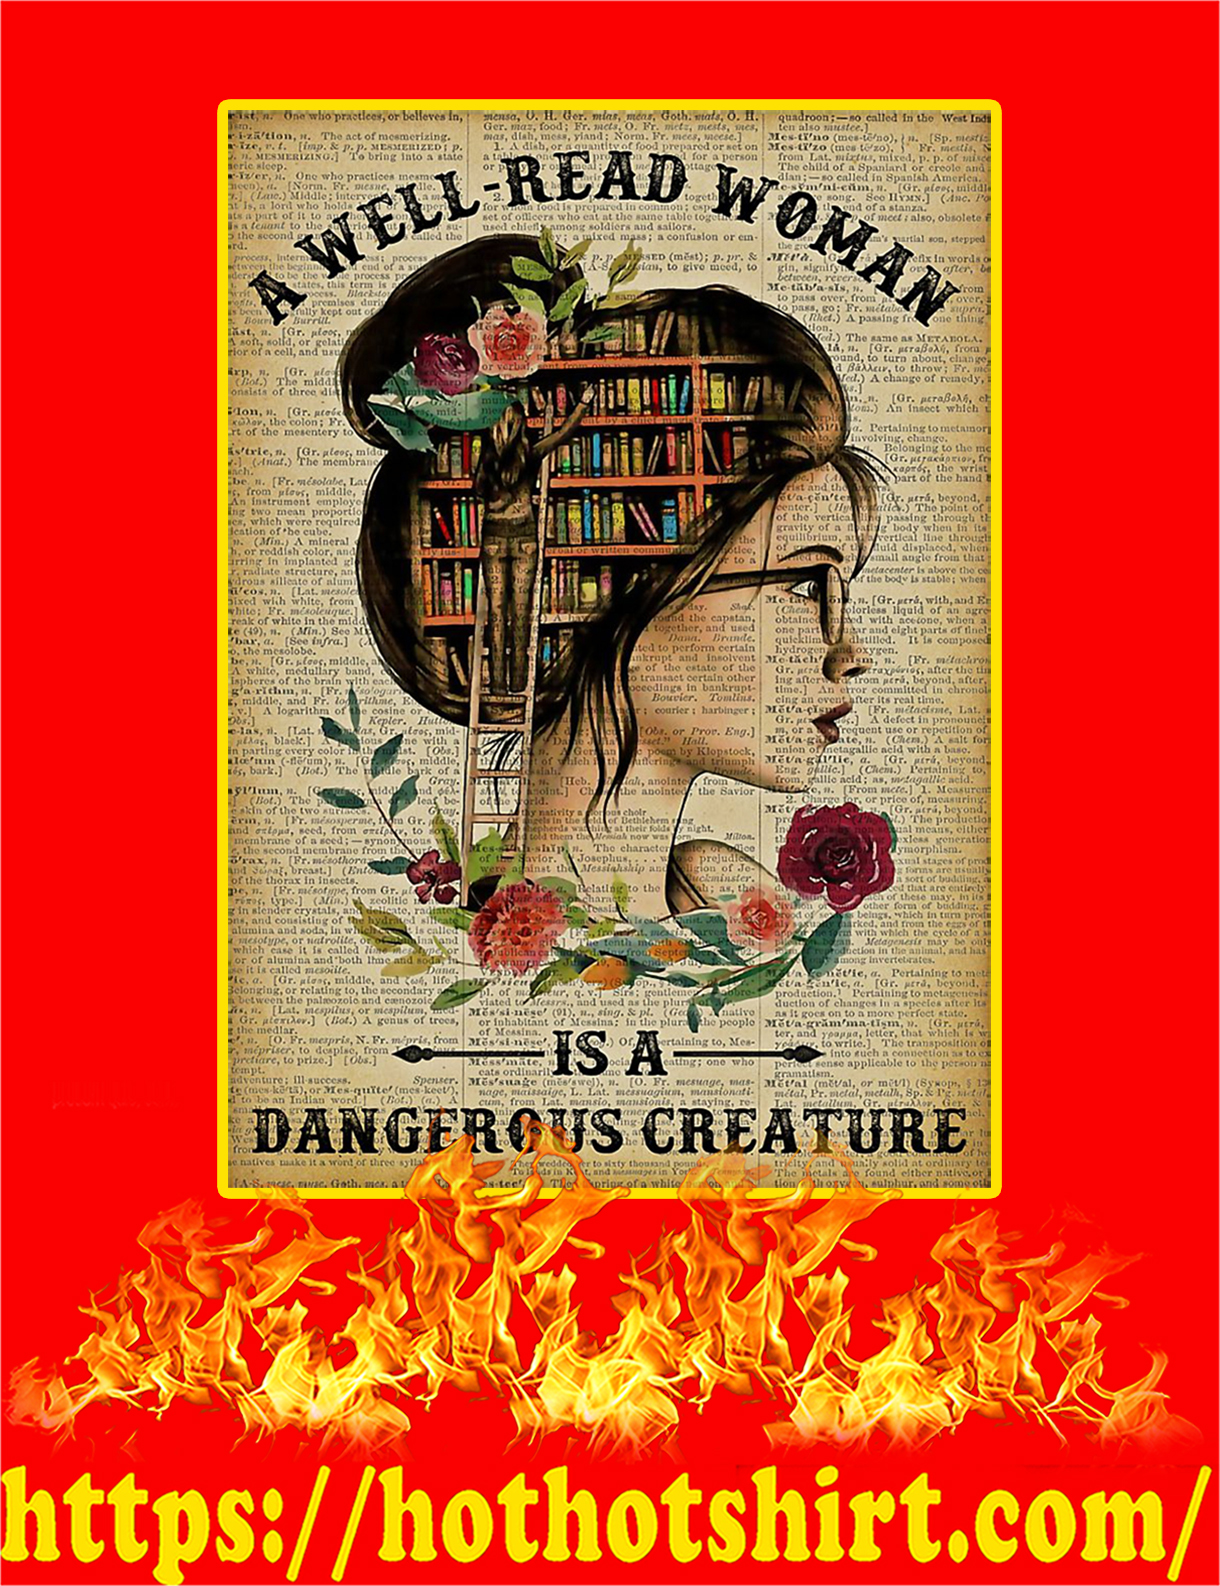 A Well Read Woman Is A Dangerous Creature Poster - A3